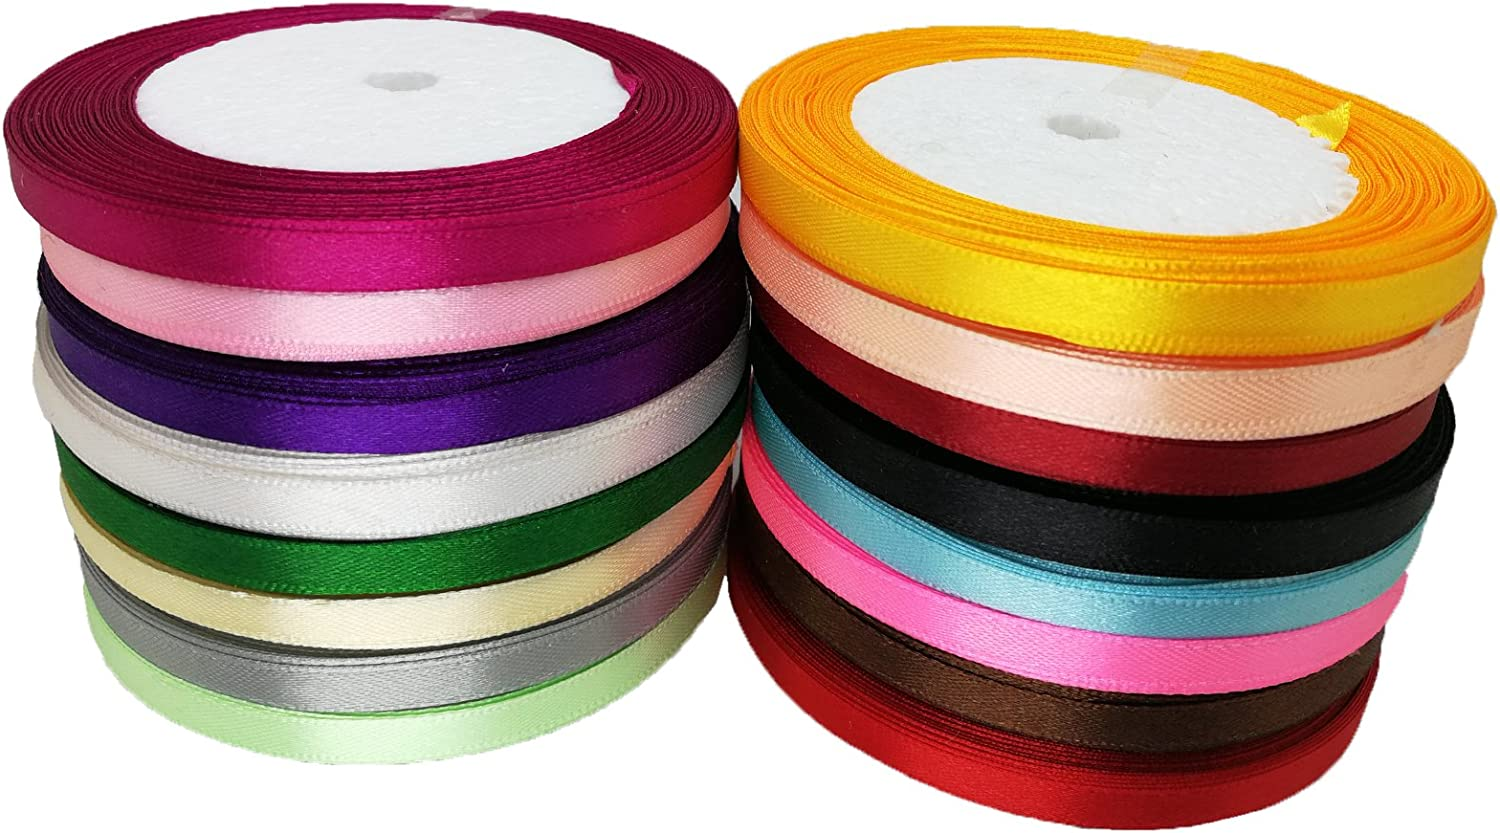 Decorator 1 20MM Crafting Sewing Wedding etc JESEP 16 Rolls 400 Yards Double Face Solid Satin Fabric Ribbon Multi-Color Packing for Gift Package Wrapping Hair Bow Clips Accessories